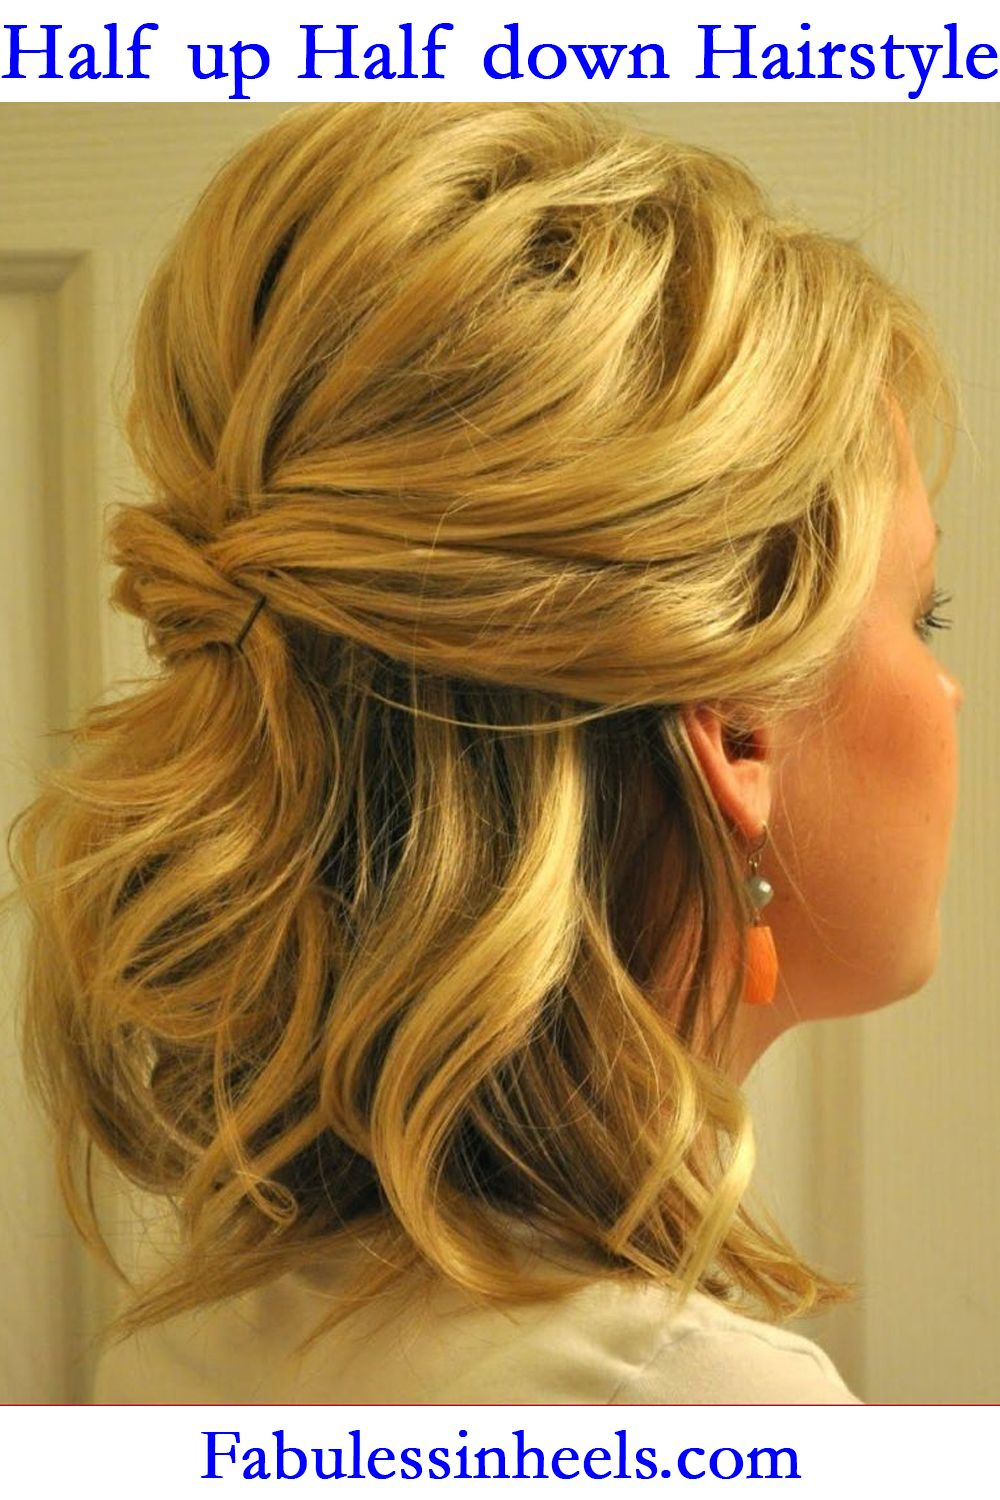 Half up Half down Hairstyle for Bridal 2019 for Medium ...